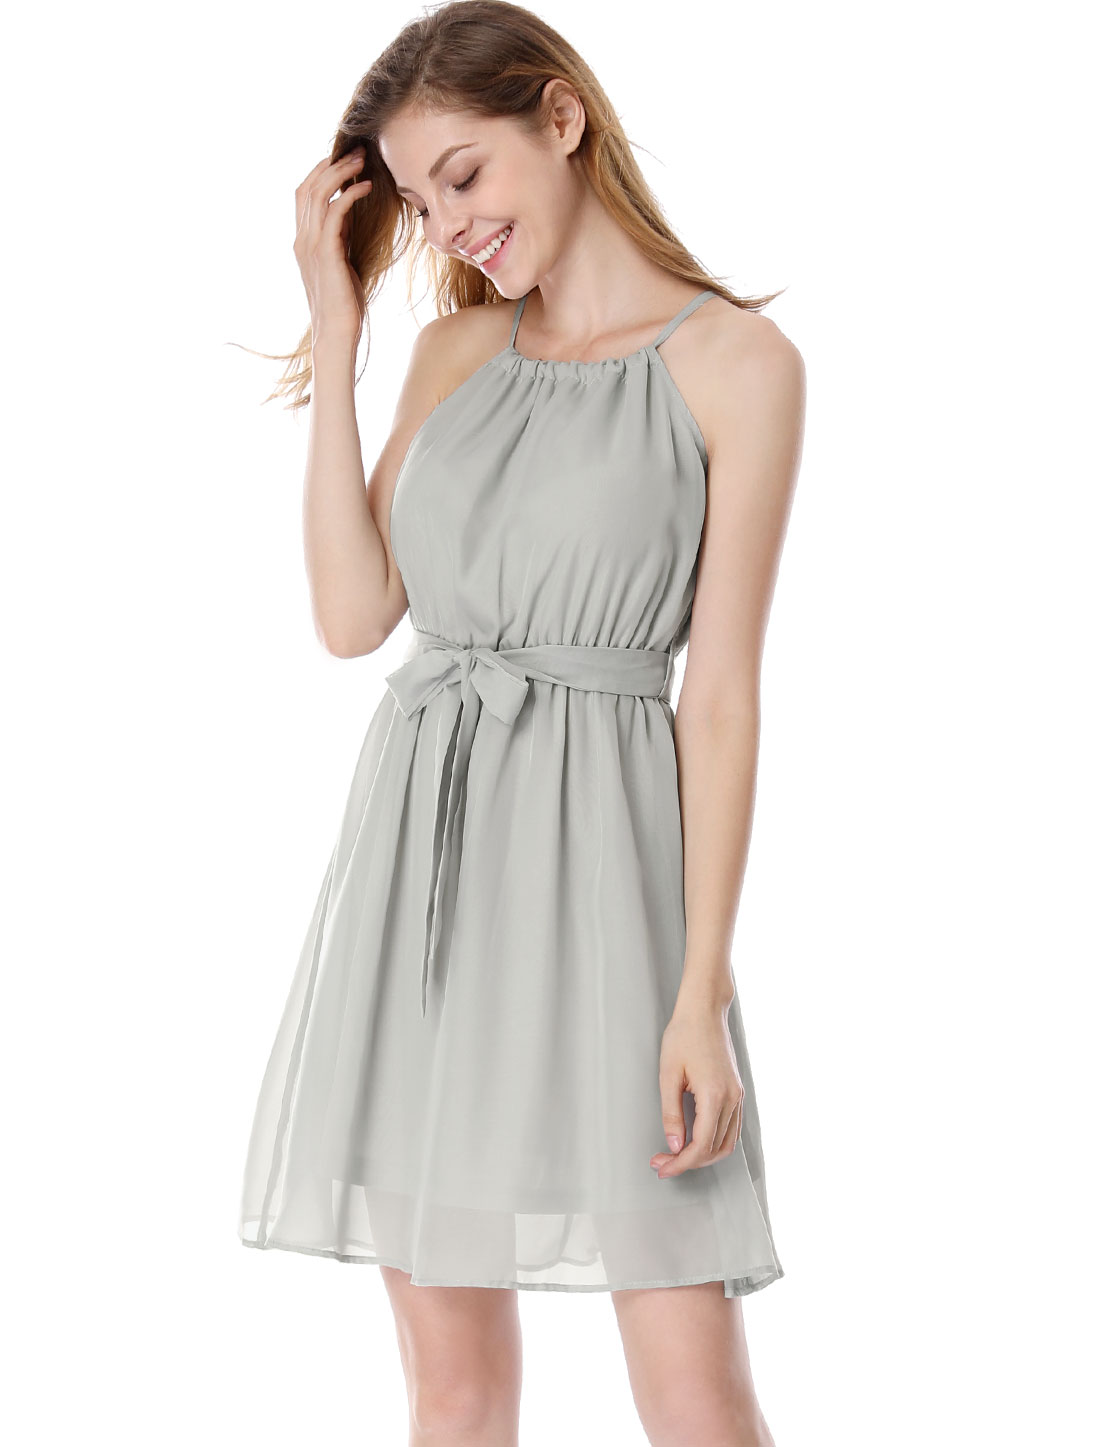 Pullover Halter Neck Design Sleeveless Light Gray Dress L for Lady L